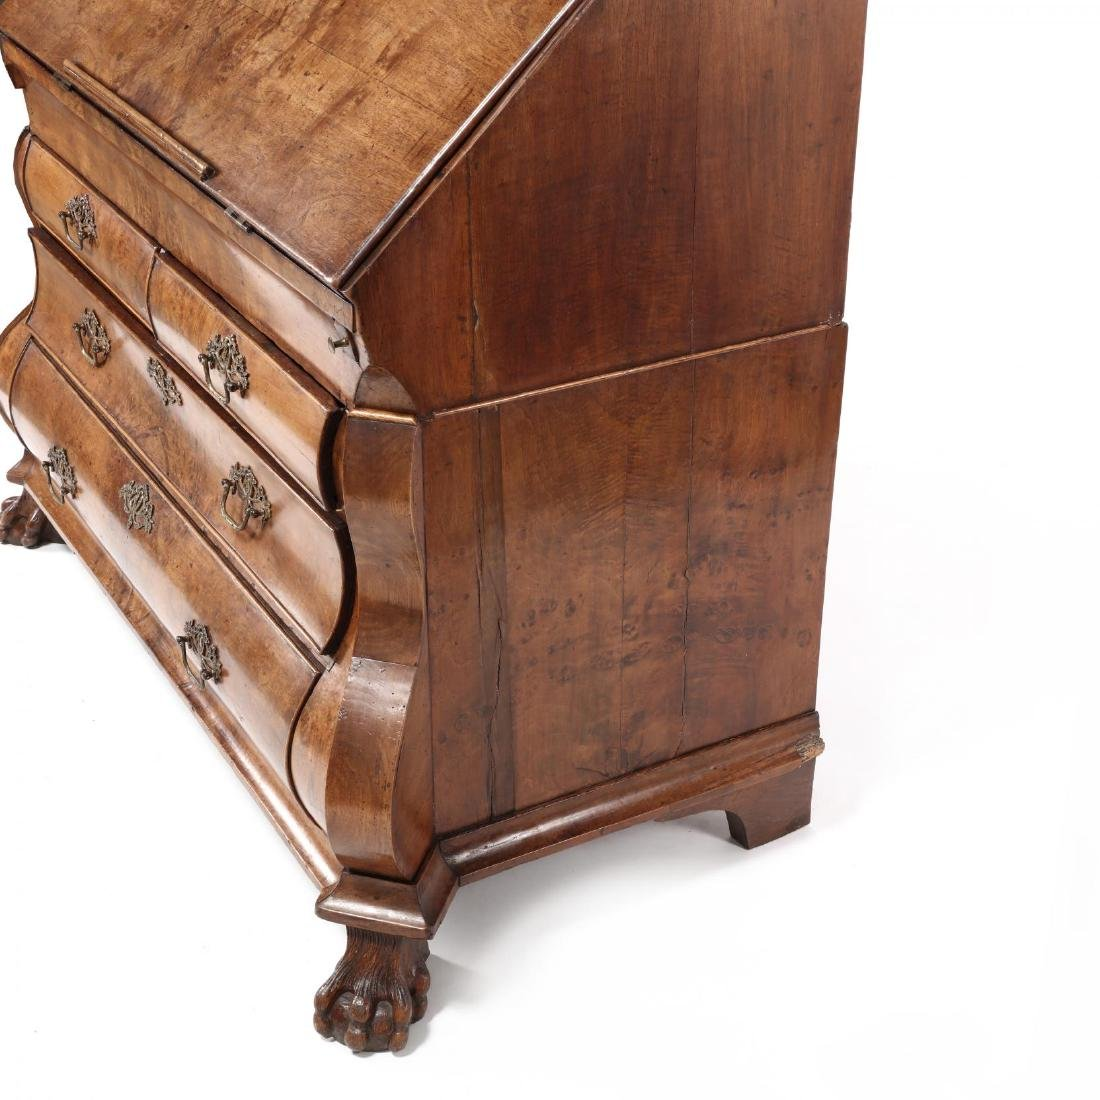 French or Dutch Baroque Bombé Secretaire Bookcase - 10